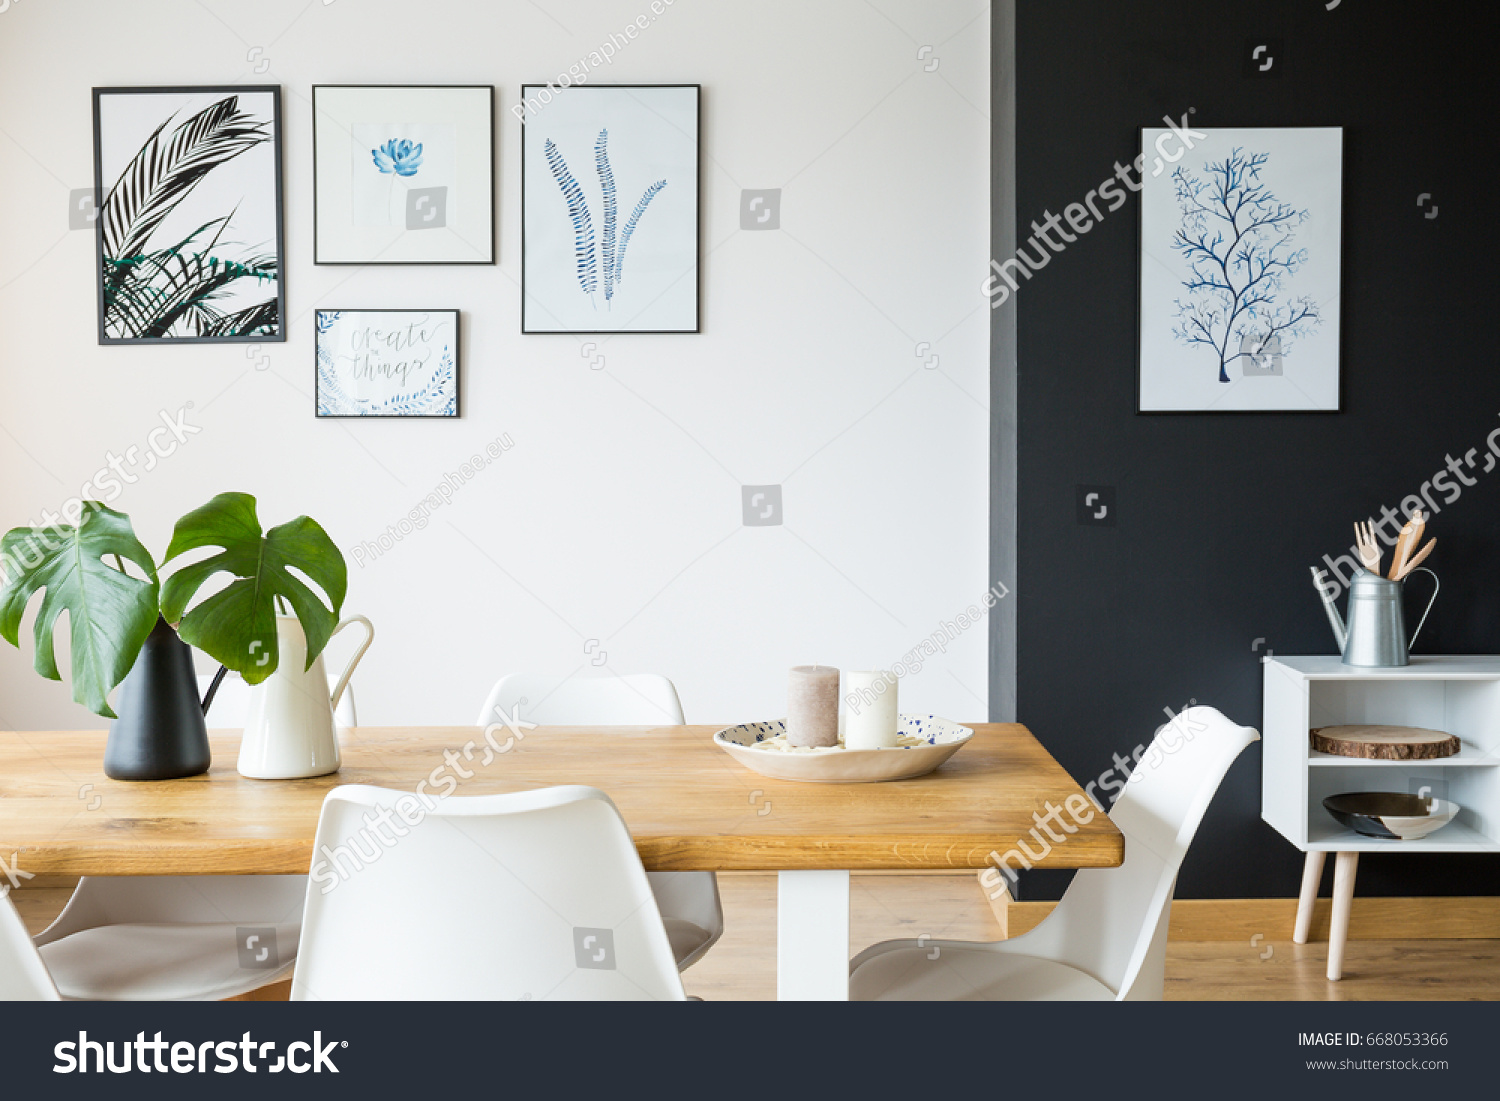 Black and white dining room with wooden table and posters. Black White Dining Room Wooden Table Stock Photo 668053366